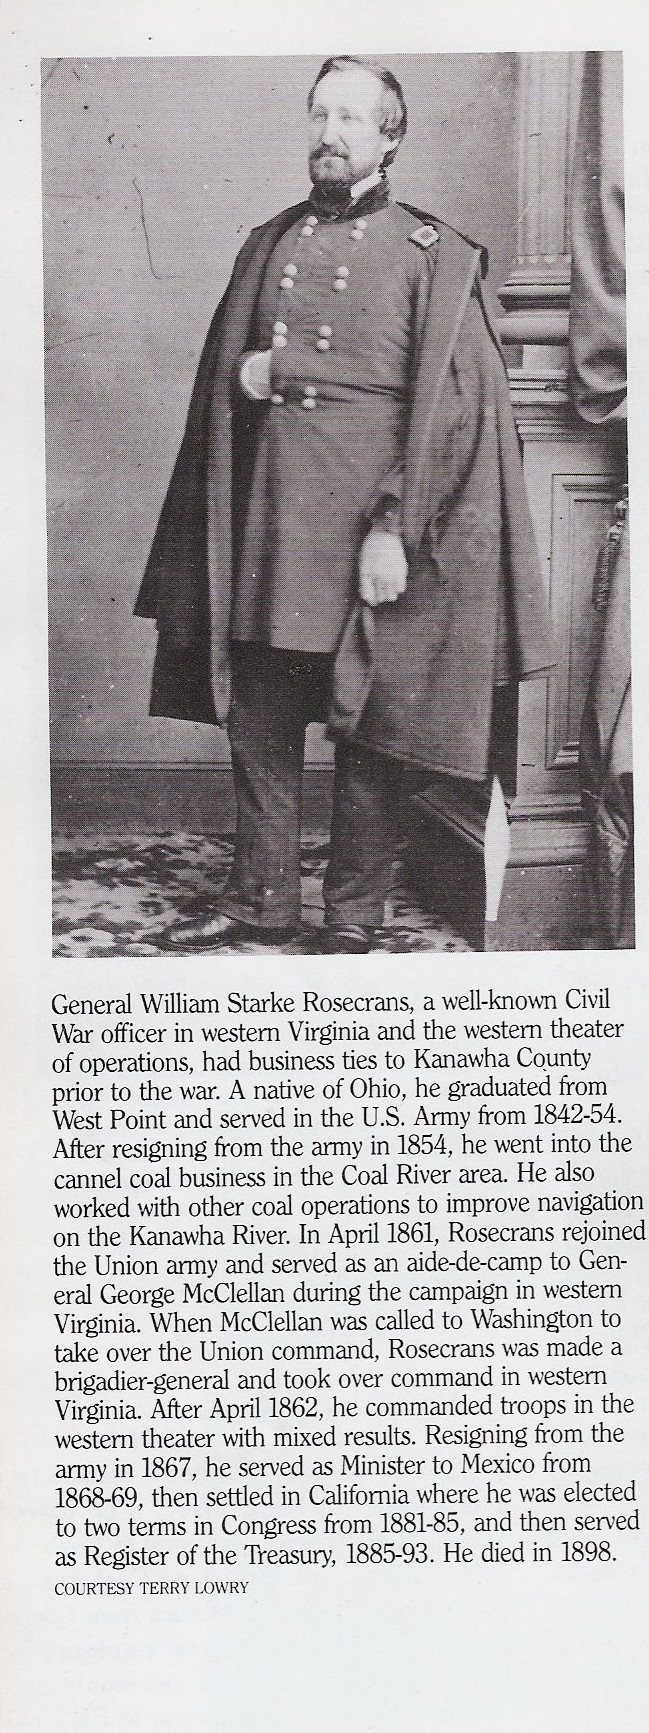 Photo and bio of William Rosecrans. Taken from Kanawha Valley Images, pg. 70.